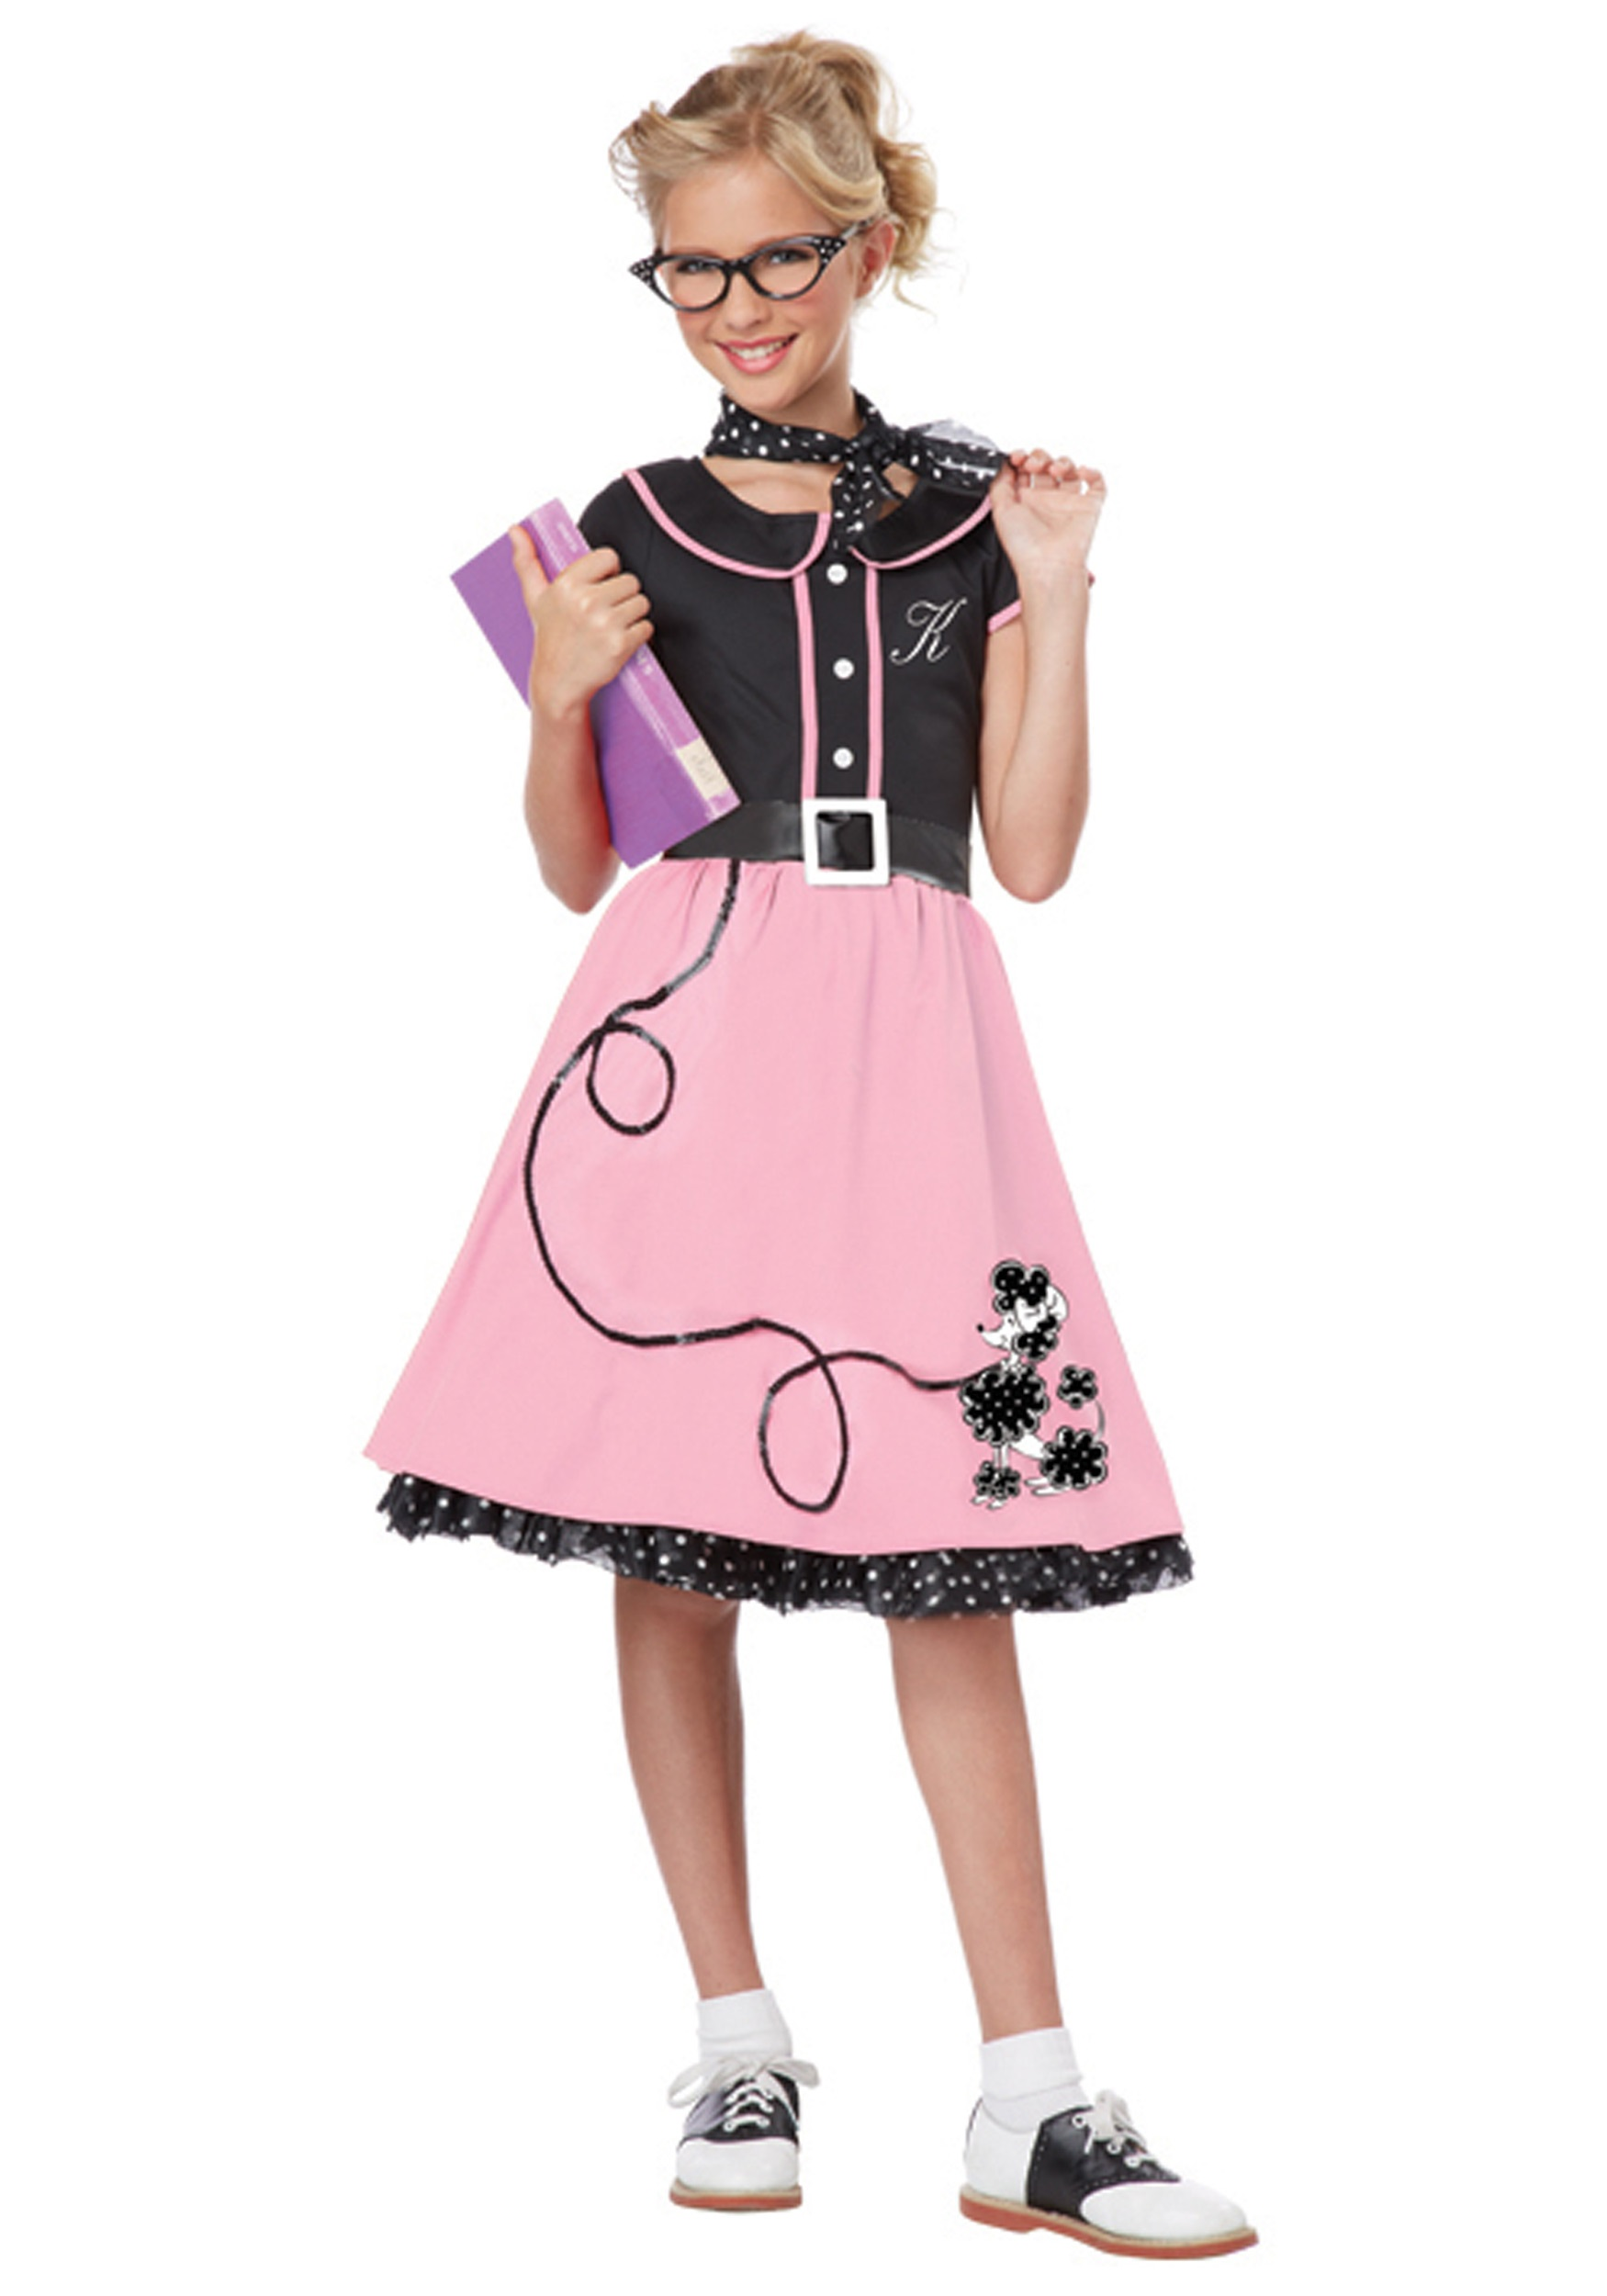 sc 1 st  Halloween Costumes : girl poodle skirt costume  - Germanpascual.Com